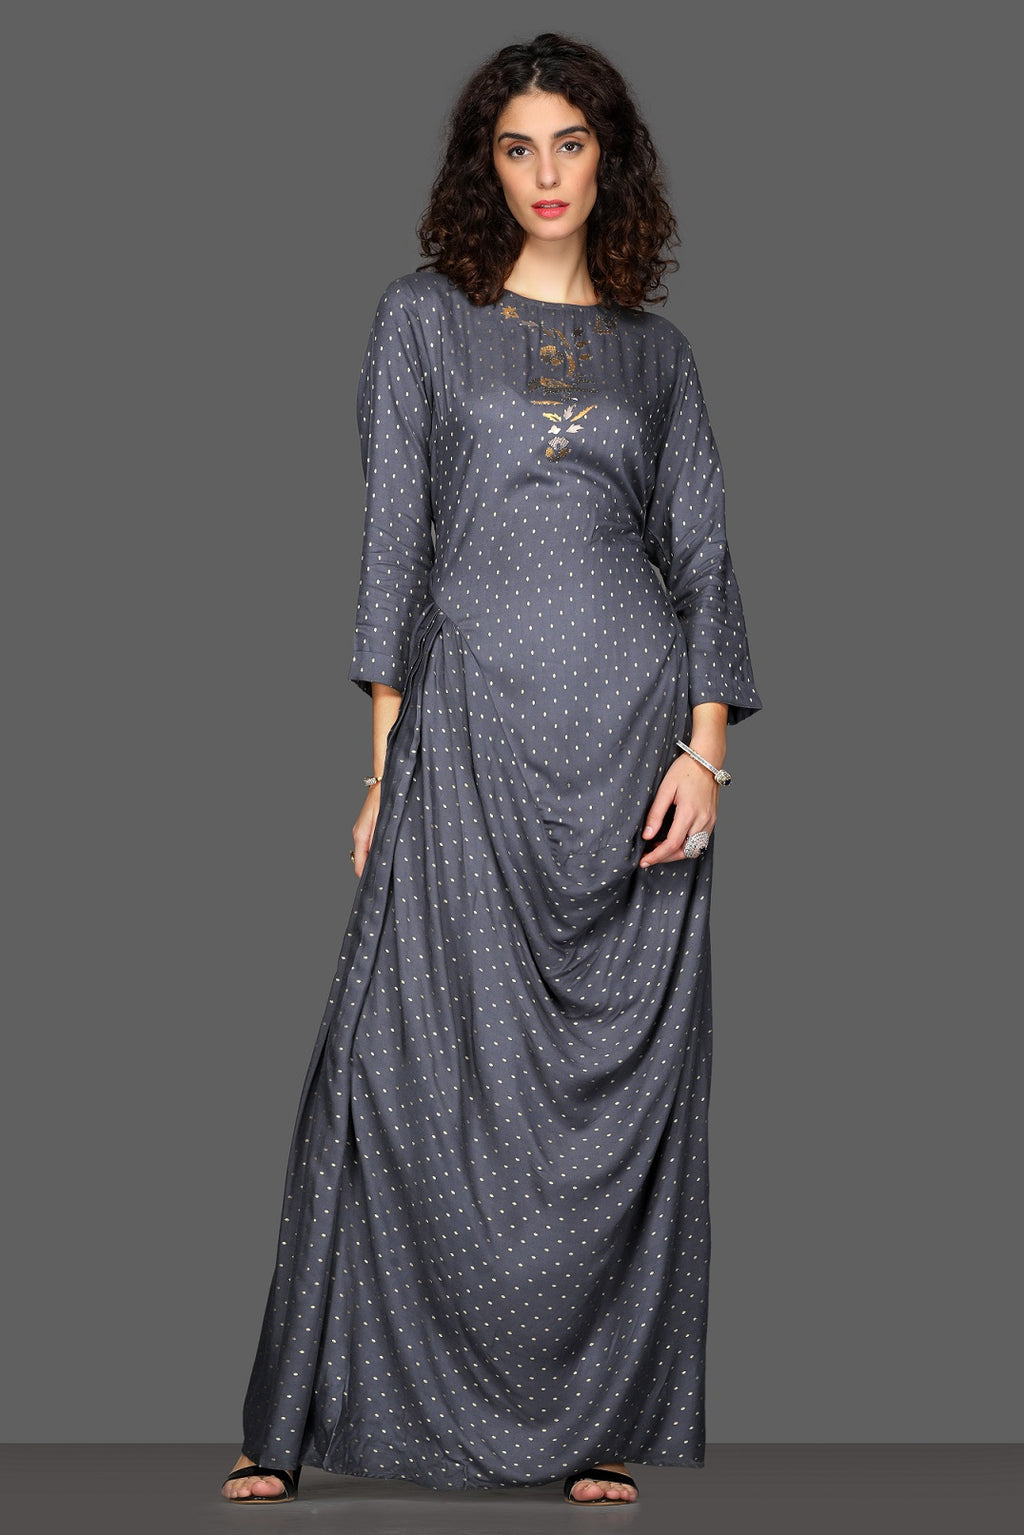 Shop elegant dark grey draped maxi dress online in USA. Dazzle on weddings and special occasions with exquisite Indian designer dresses, sharara suits, Anarkali suits from Pure Elegance Indian fashion store in USA.-full view